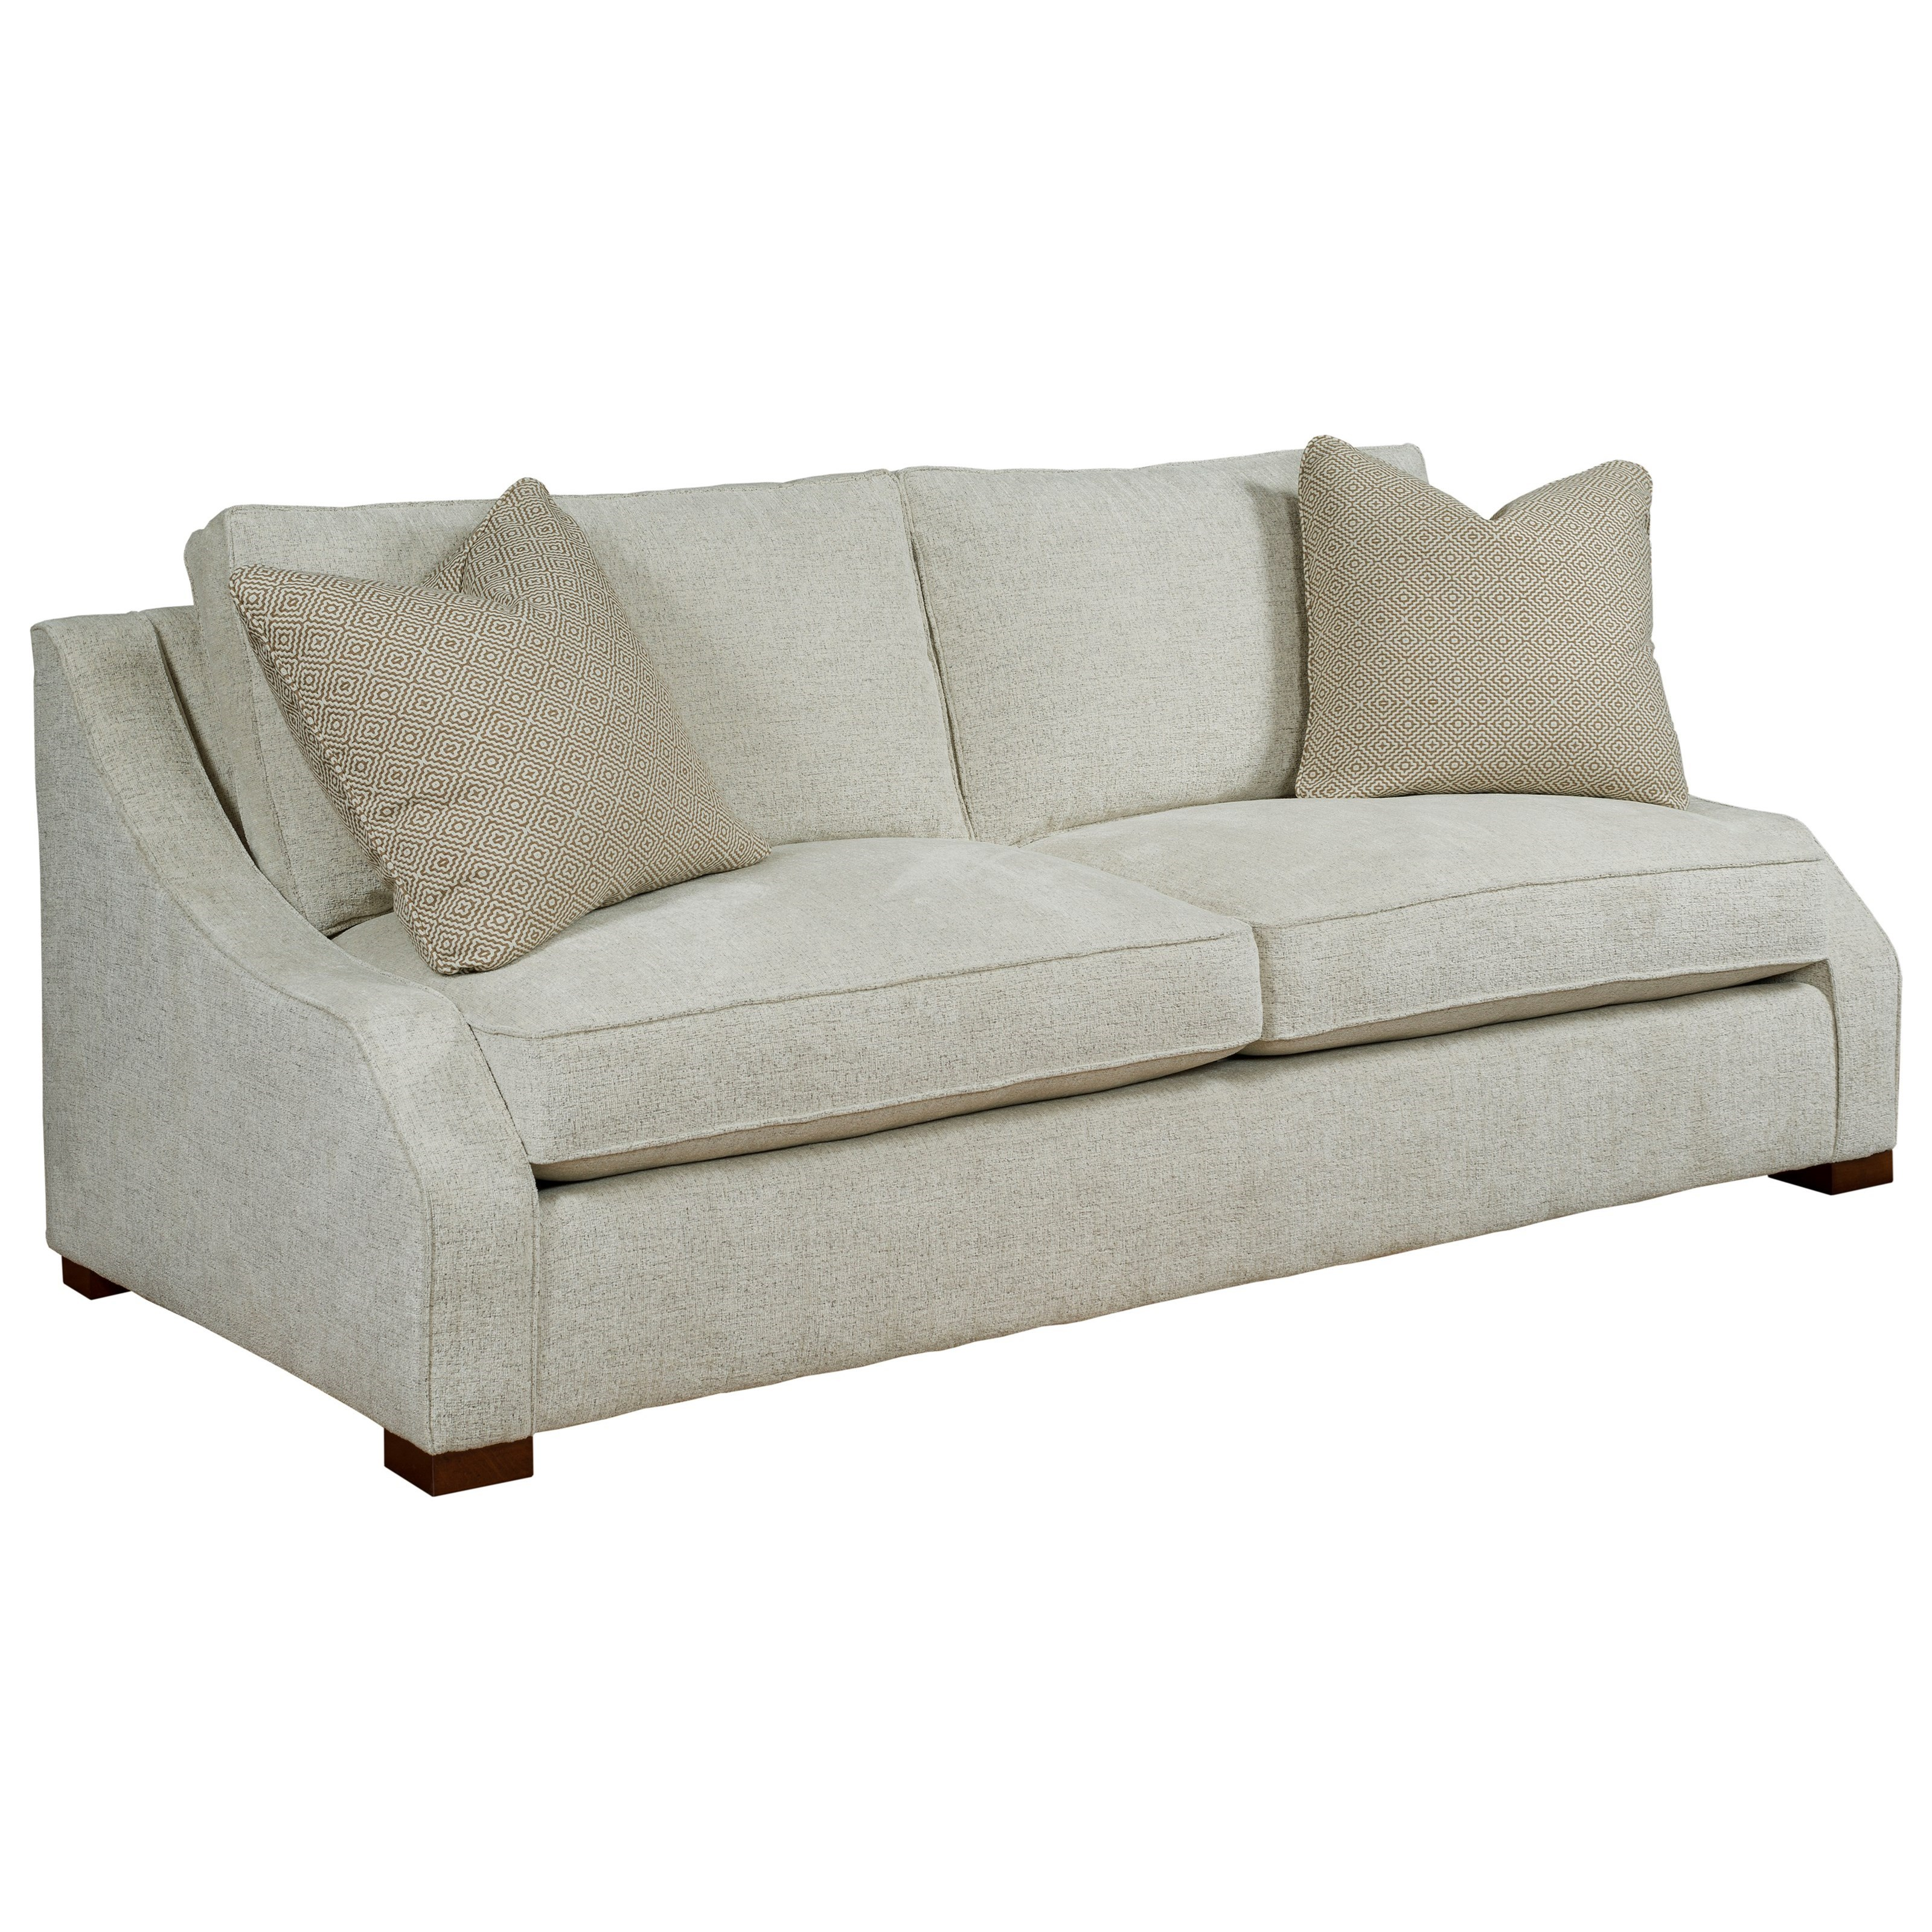 Monarch Sofa by Kincaid Furniture at Johnny Janosik